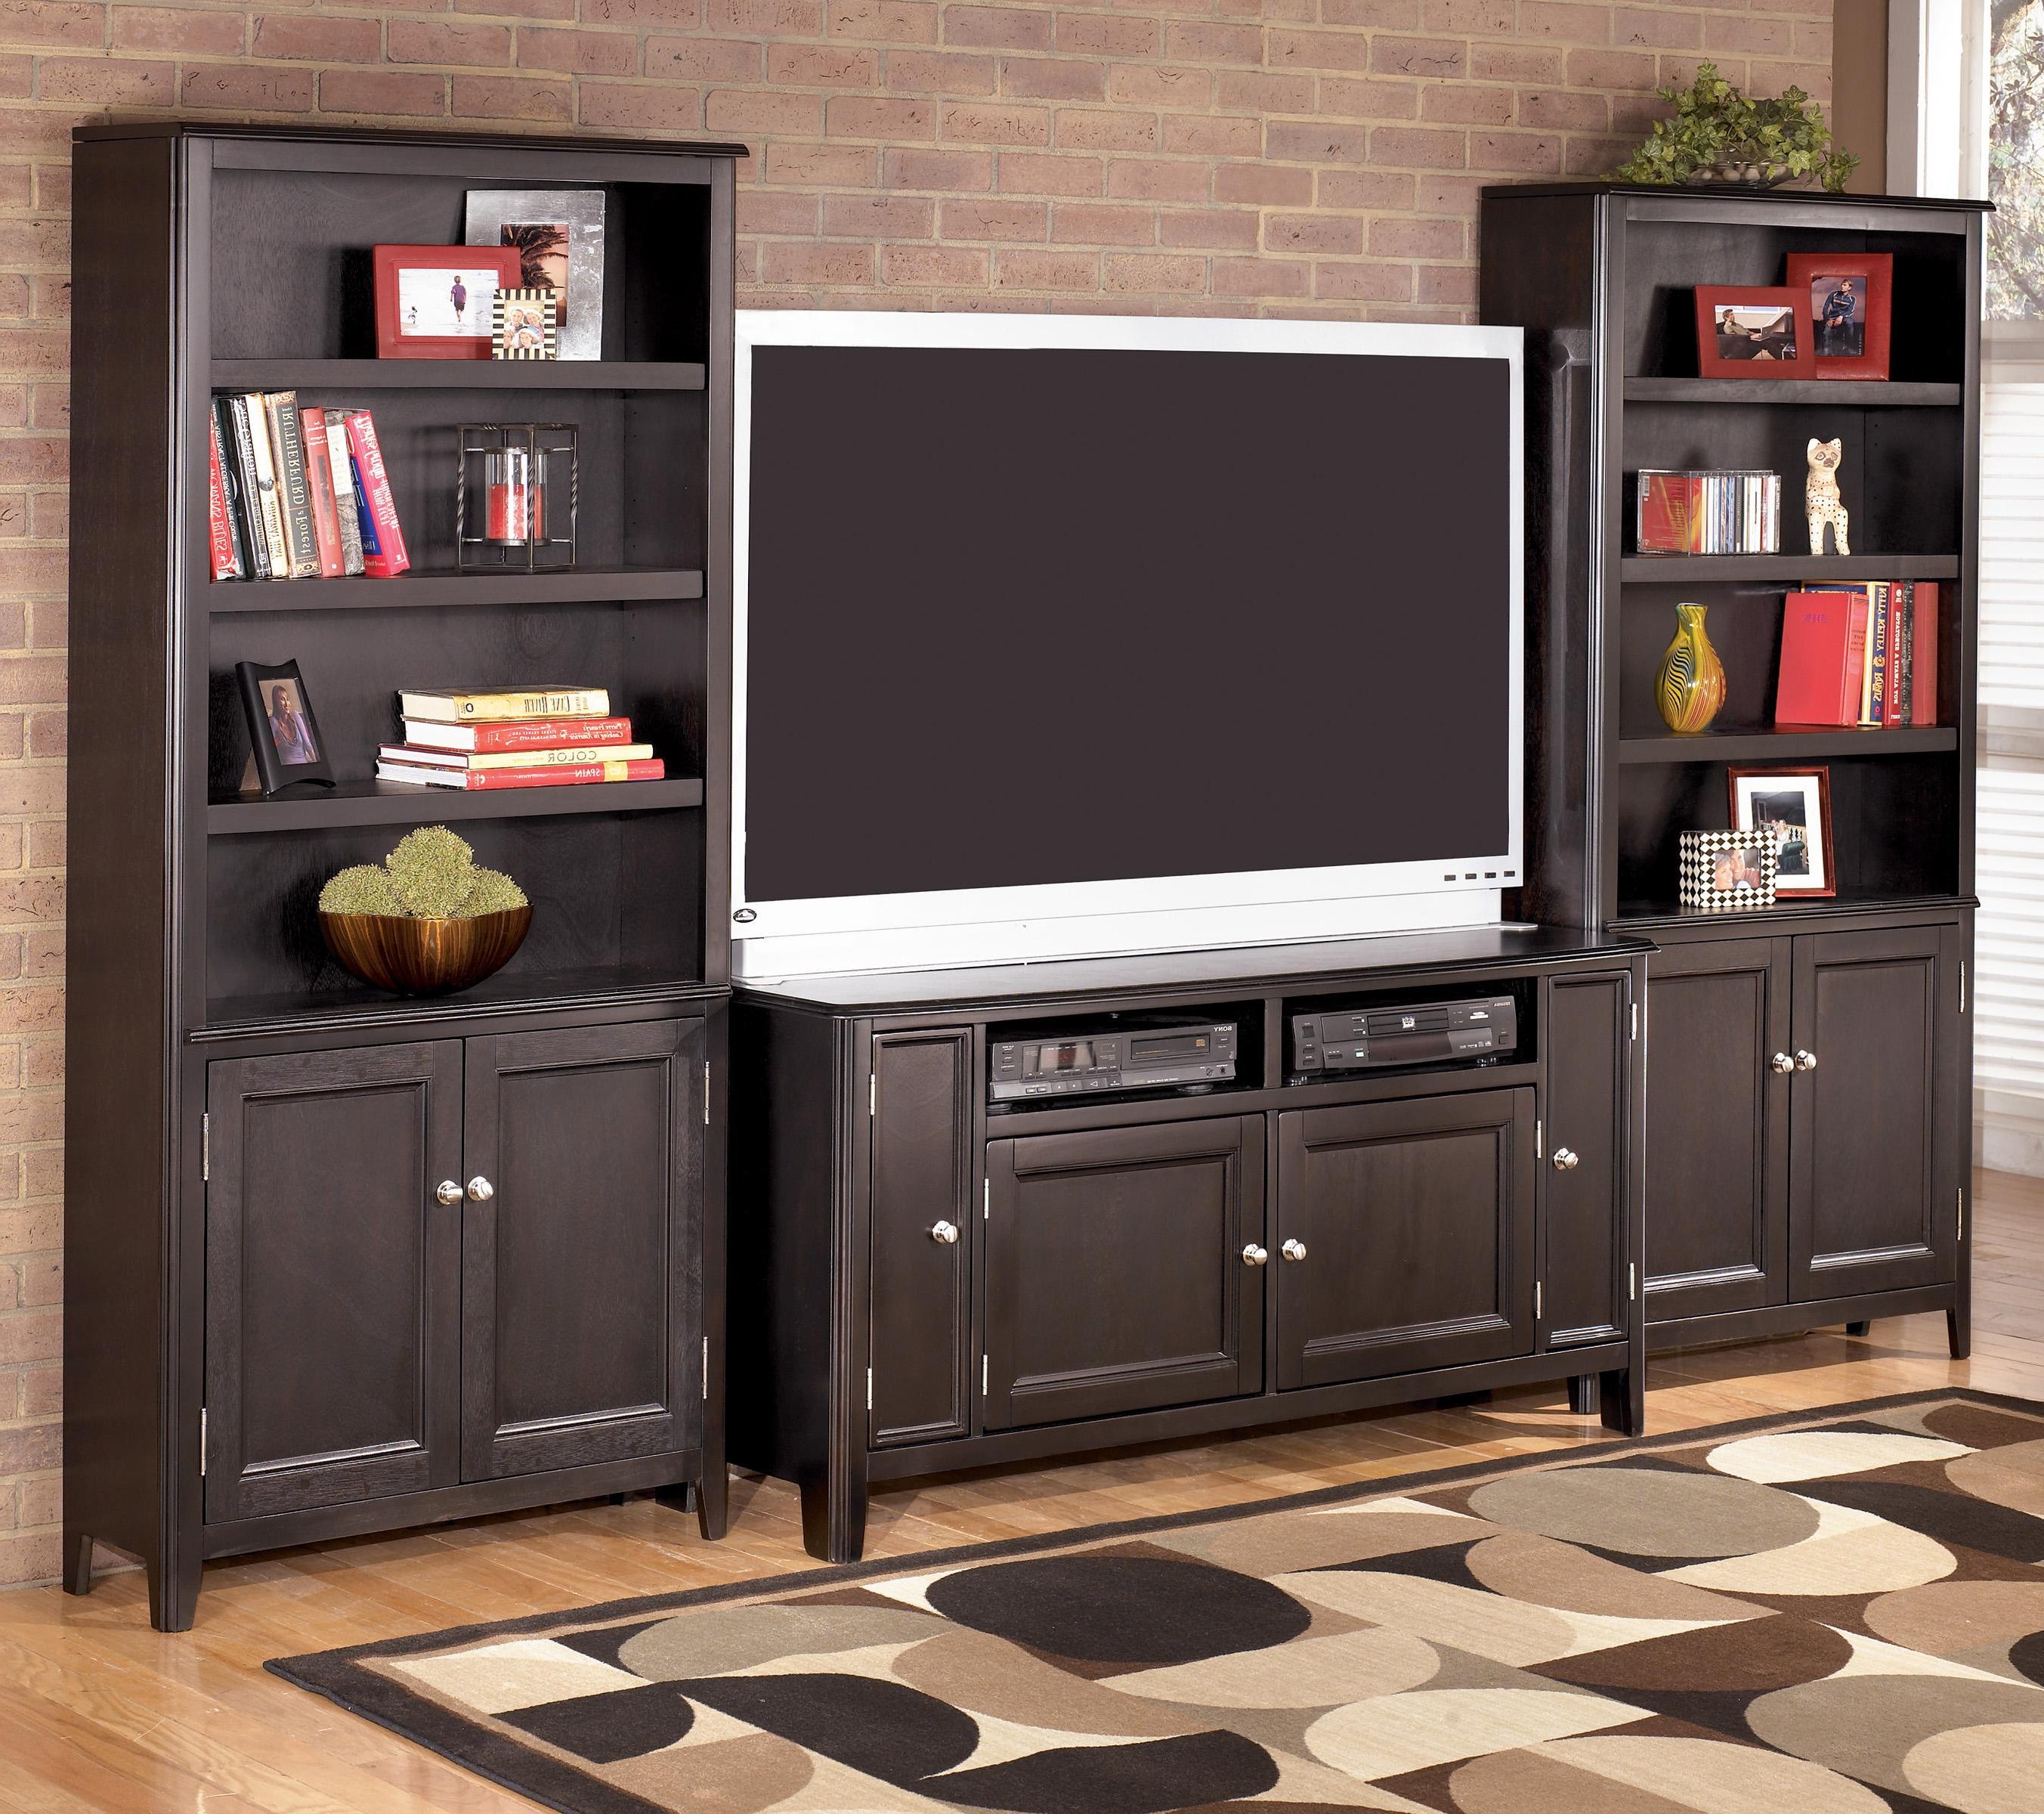 60 Inch Tv Wall Units With Regard To Well Known Signature Designashley Carlyle 60 Inch Tv Stand & 2 Large Door (Gallery 7 of 20)